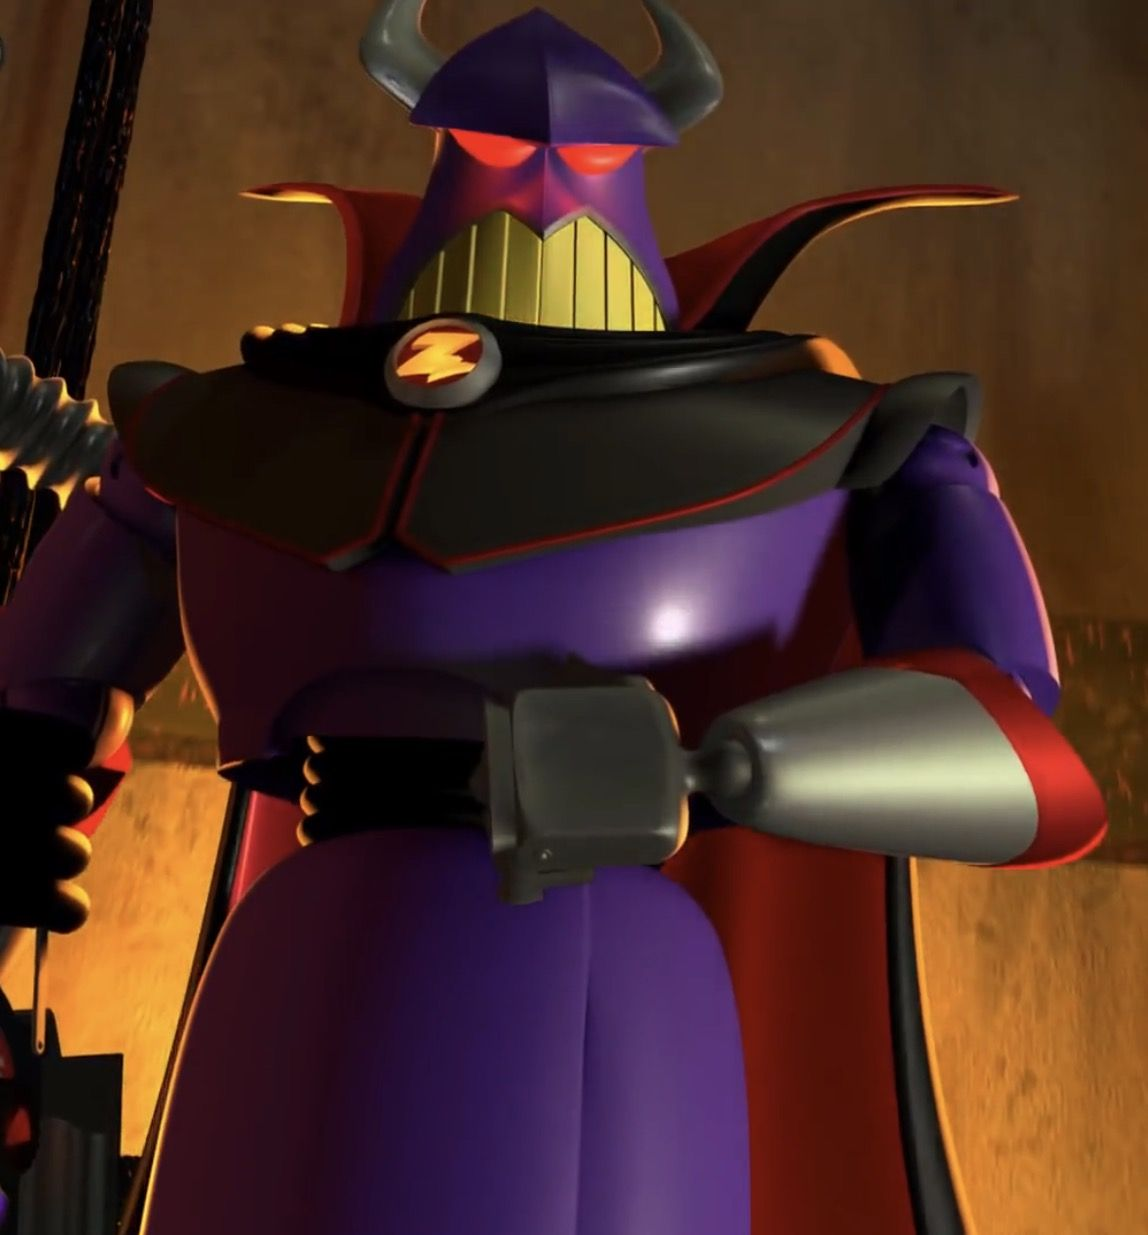 Evil Emperor Zurg Toy Story 2 In 2019 Toy Story